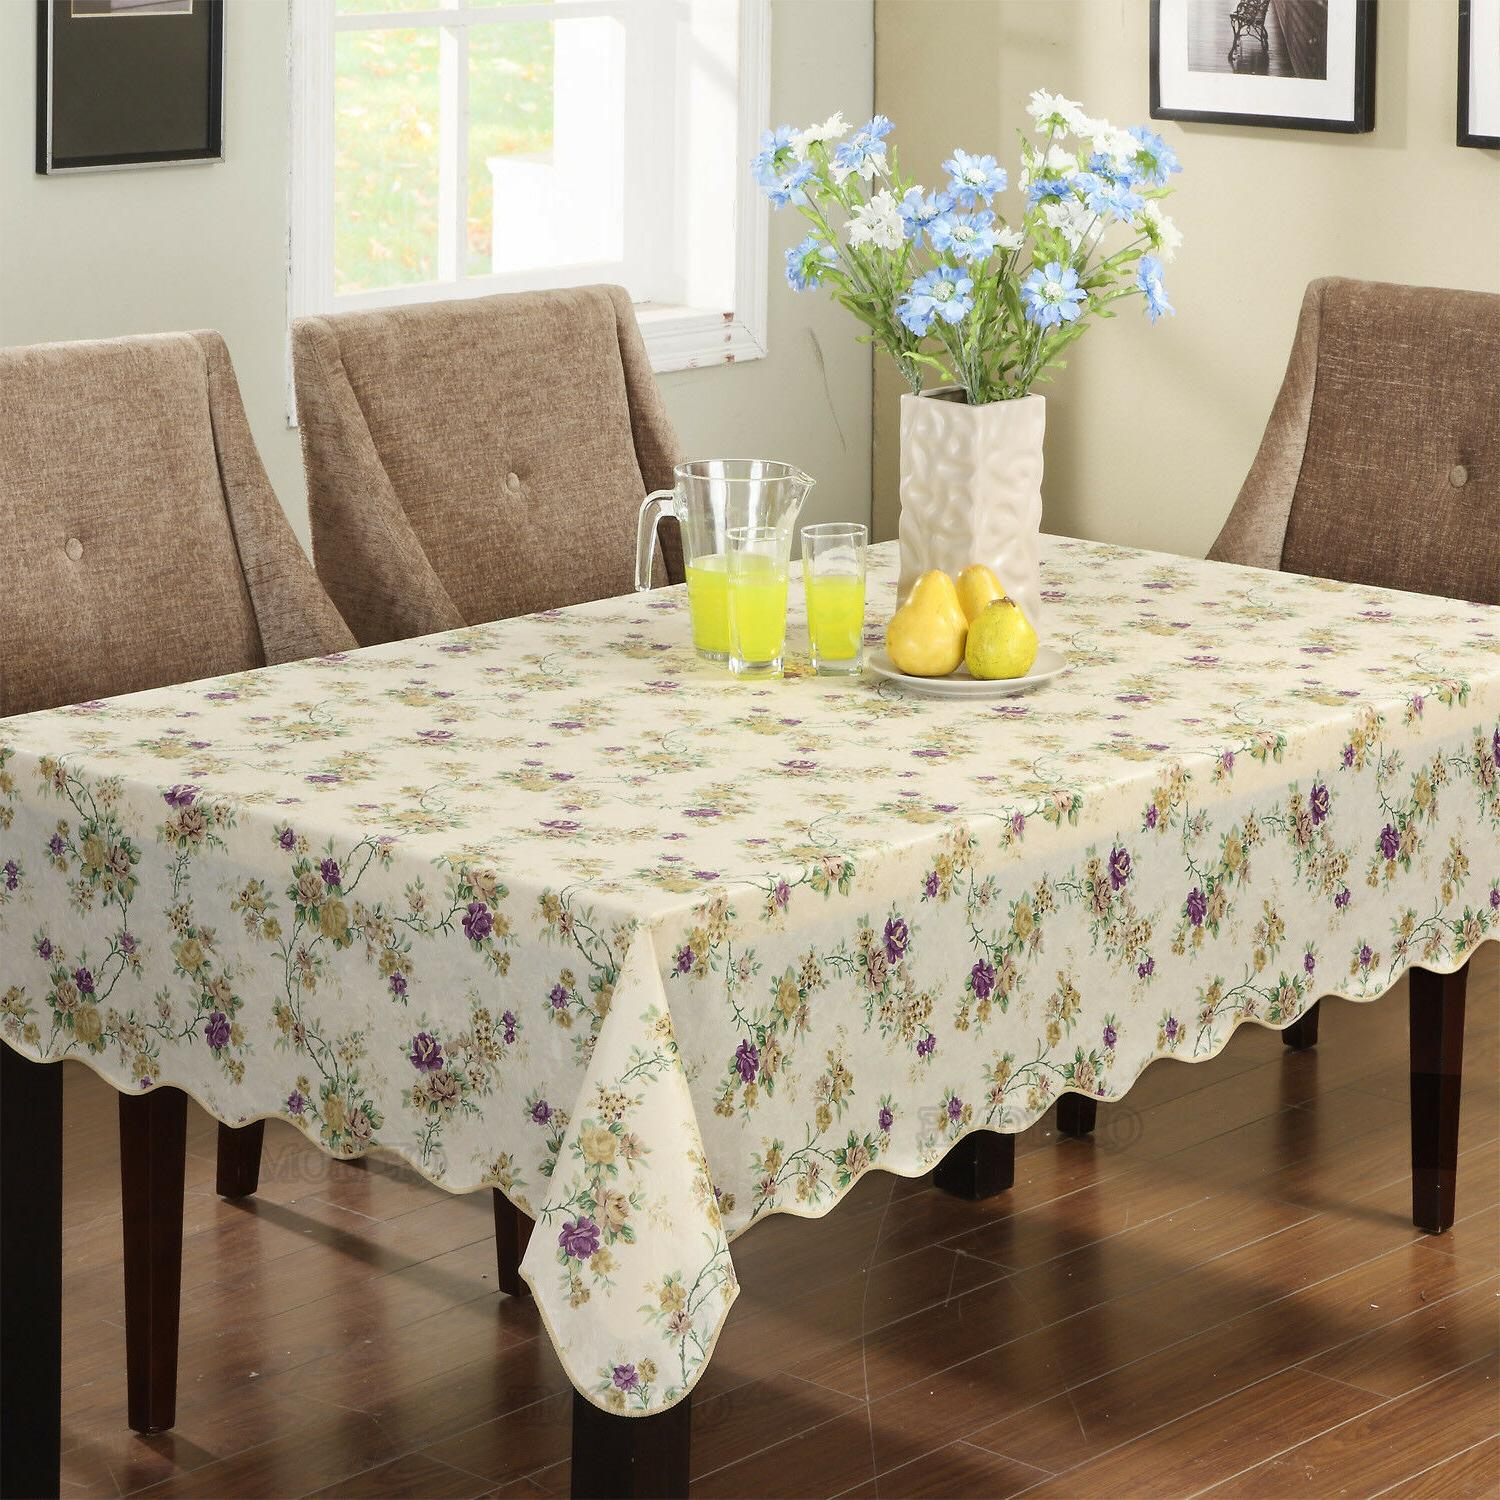 Warterproof Vinyl Tablecloth Flannel Backed Rectangle/Oblong